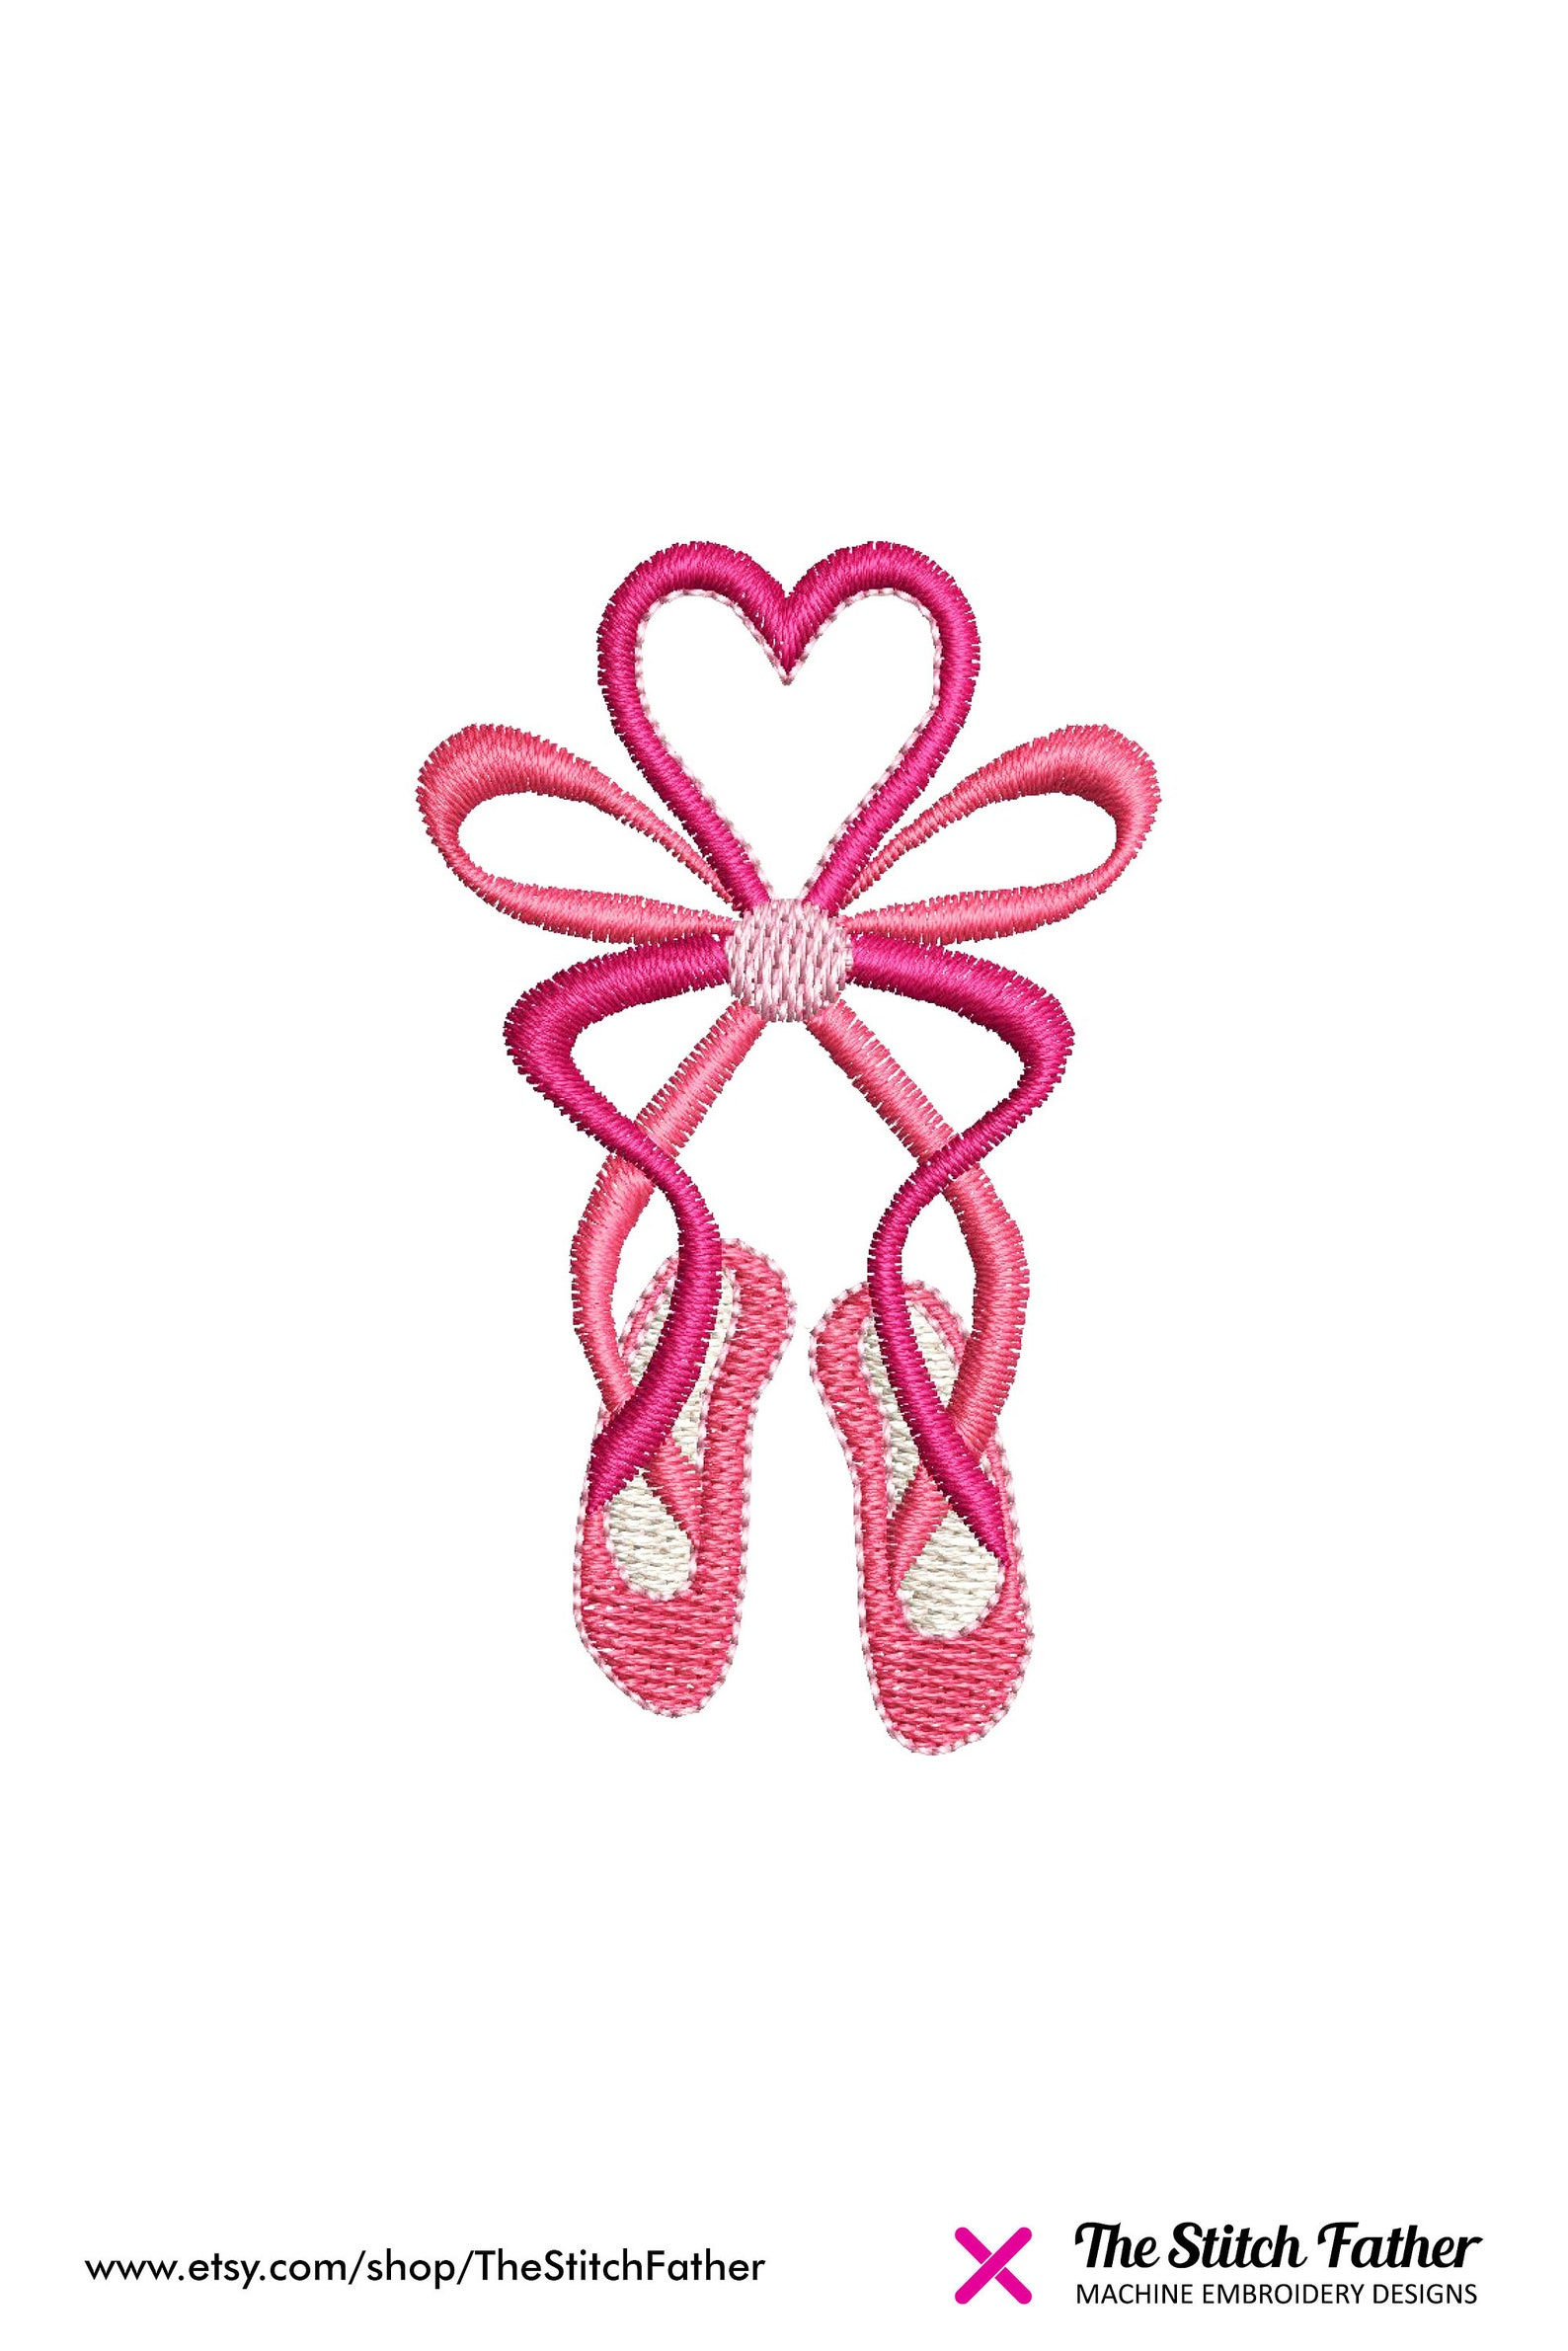 mini ballet shoes ribbon embroidery design – heart bow ballerina pointe dancing shoes ballet tutu – girl dance embroidery - inst